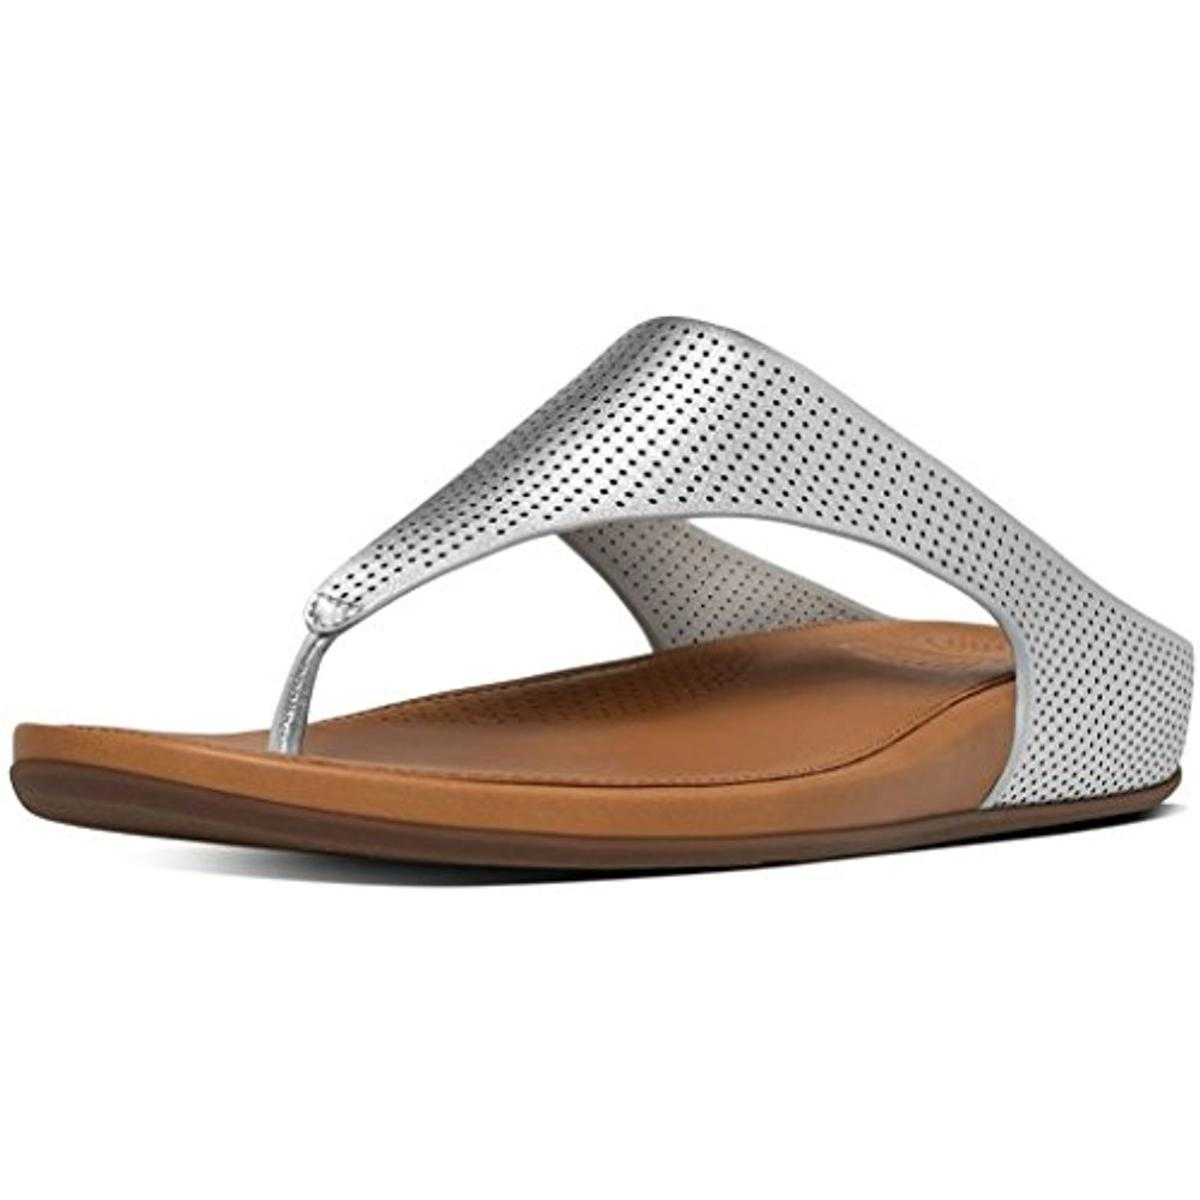 be3a8fec3 Details about Fitflop Womens Banda Silver Thong Sandals Shoes 8-9 Medium  (B